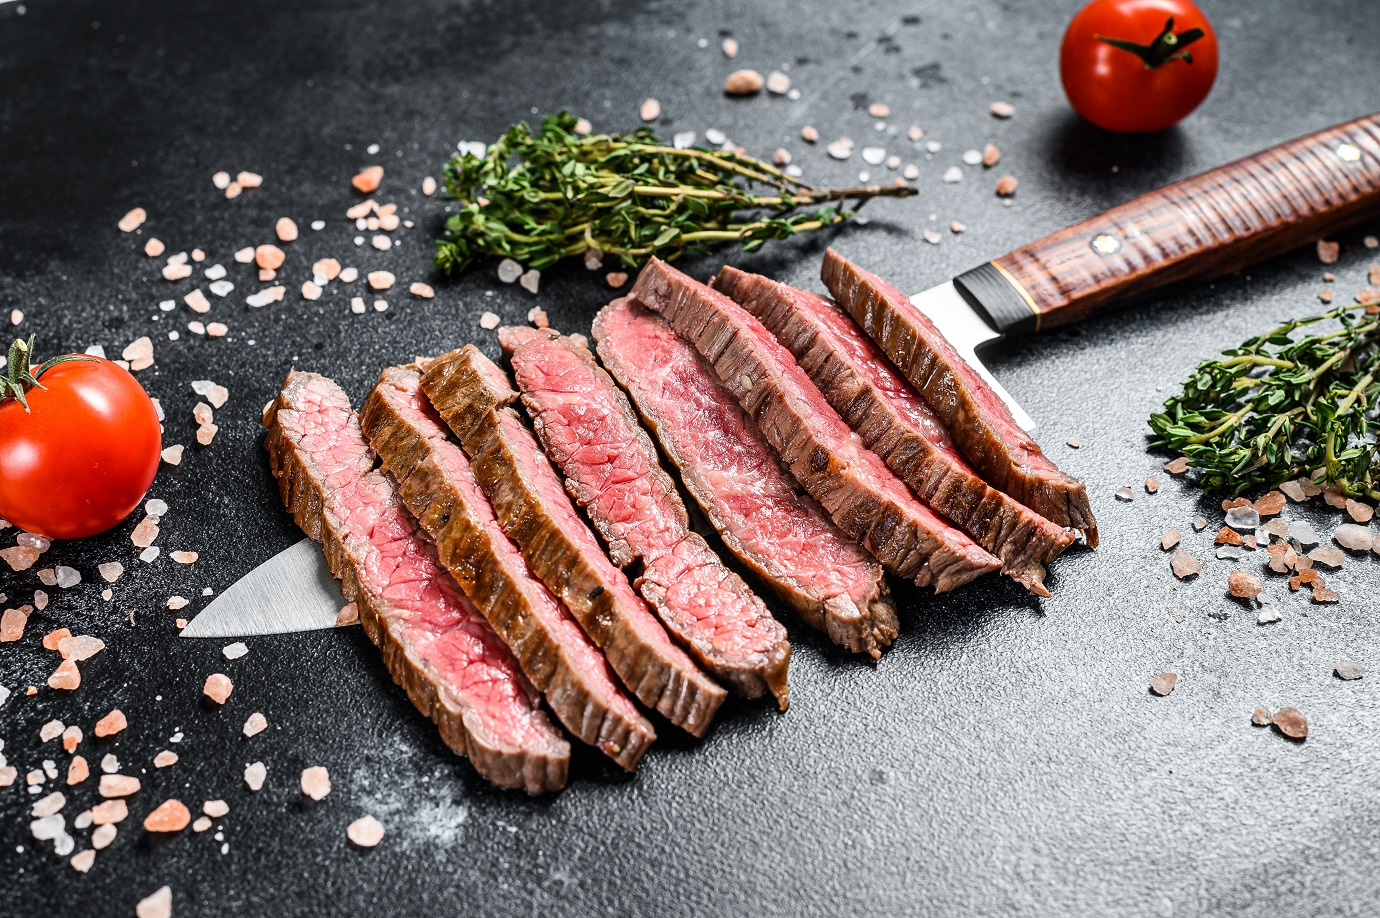 Grilled-and-sliced-flat-iron-rare-steak